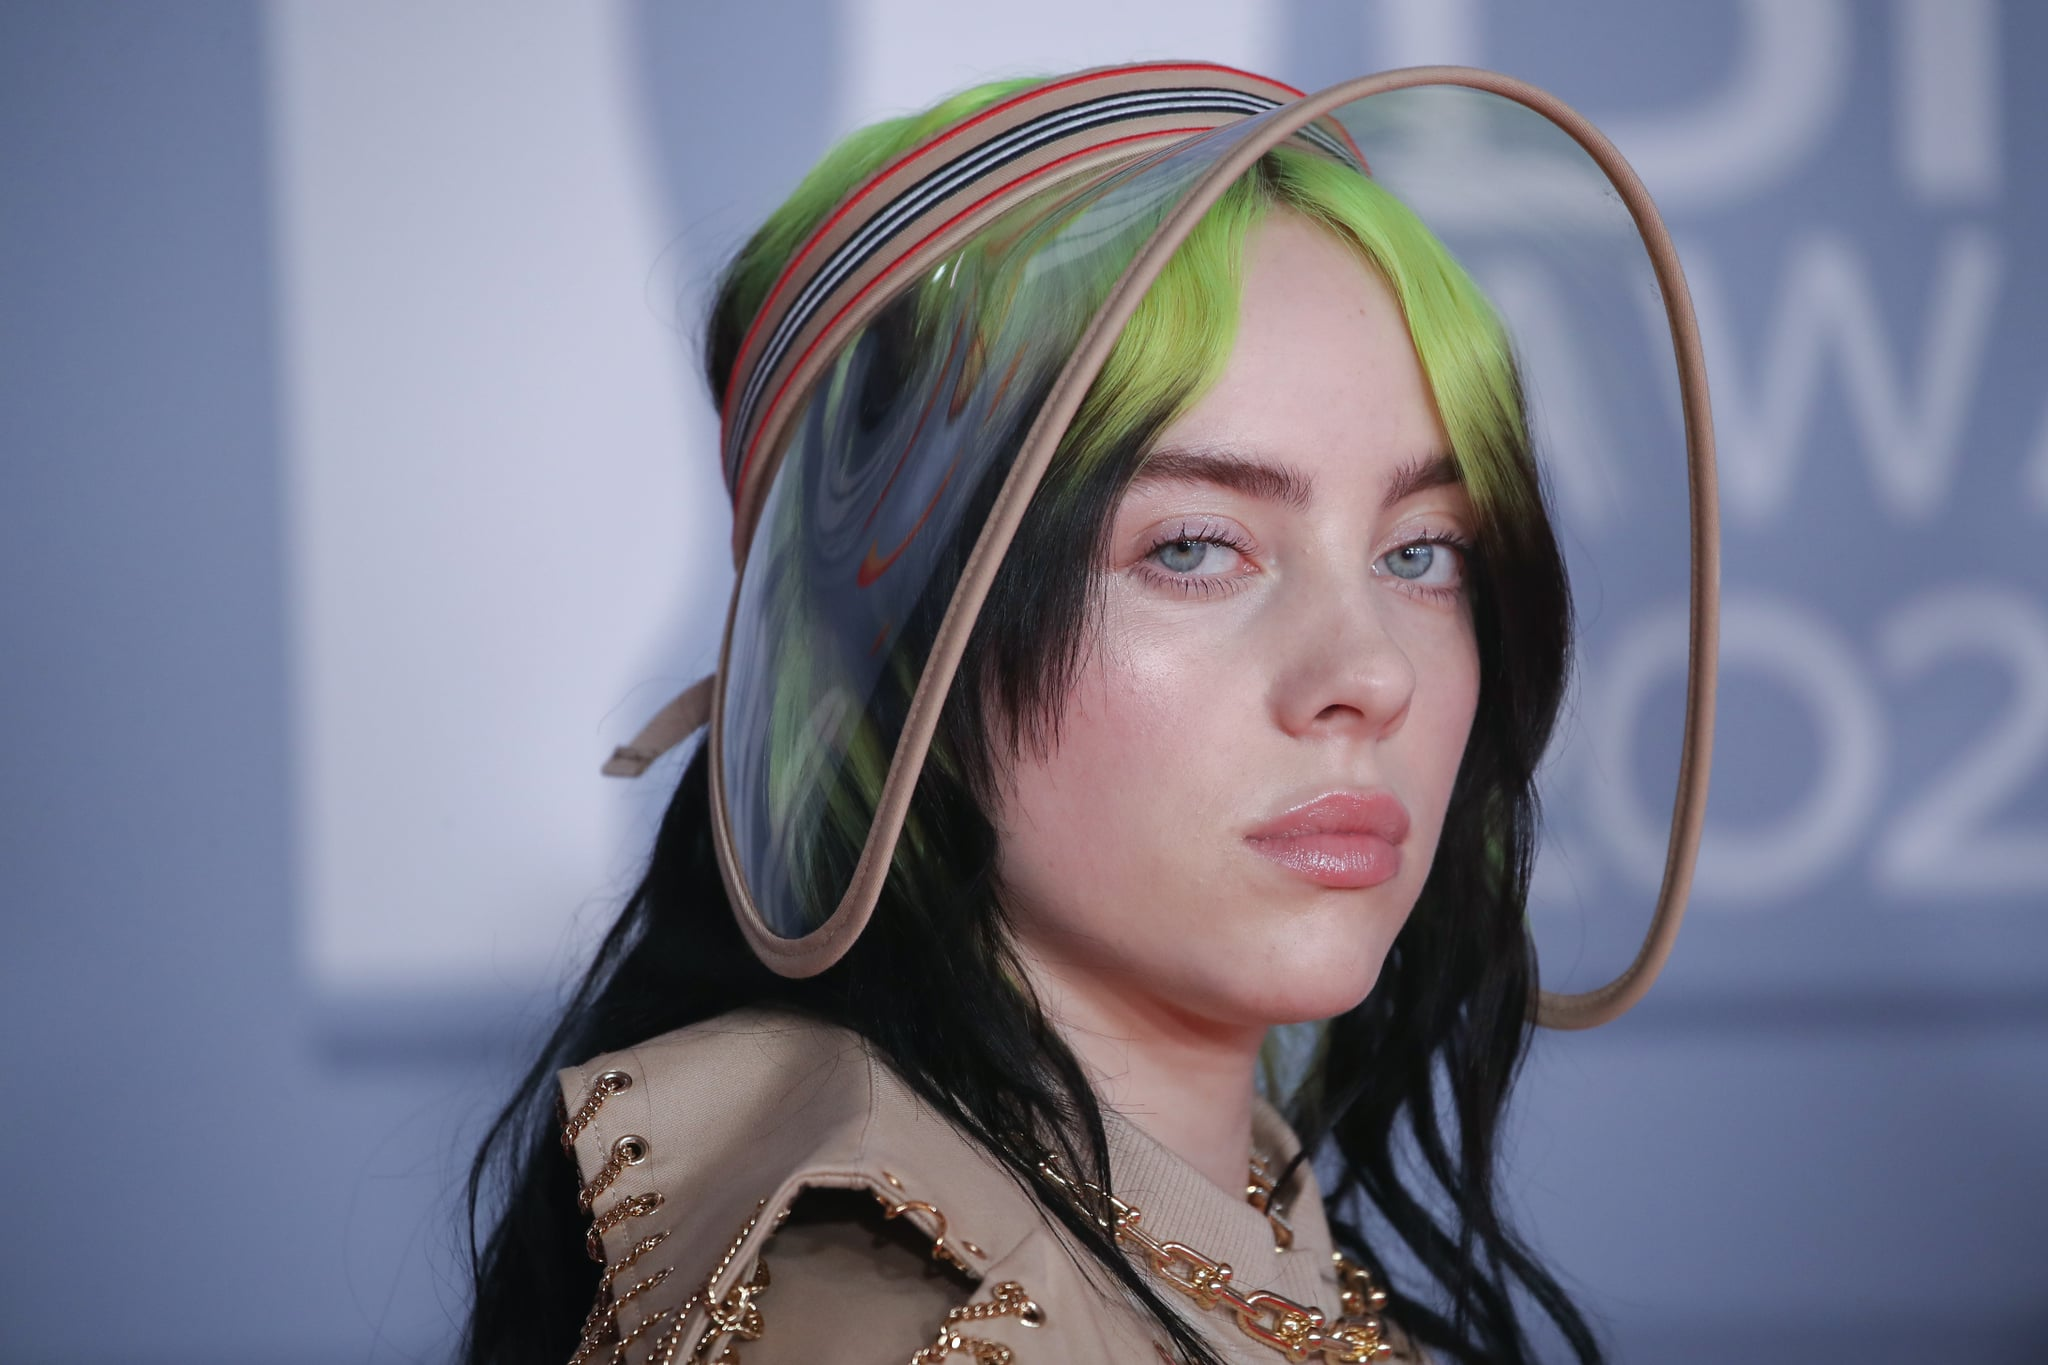 LONDON, ENGLAND - FEBRUARY 18: (EDITORIAL USE ONLY) Billie Eilish attends The BRIT Awards 2020 at The O2 Arena on February 18, 2020 in London, England. (Photo by Mike Marsland/WireImage)